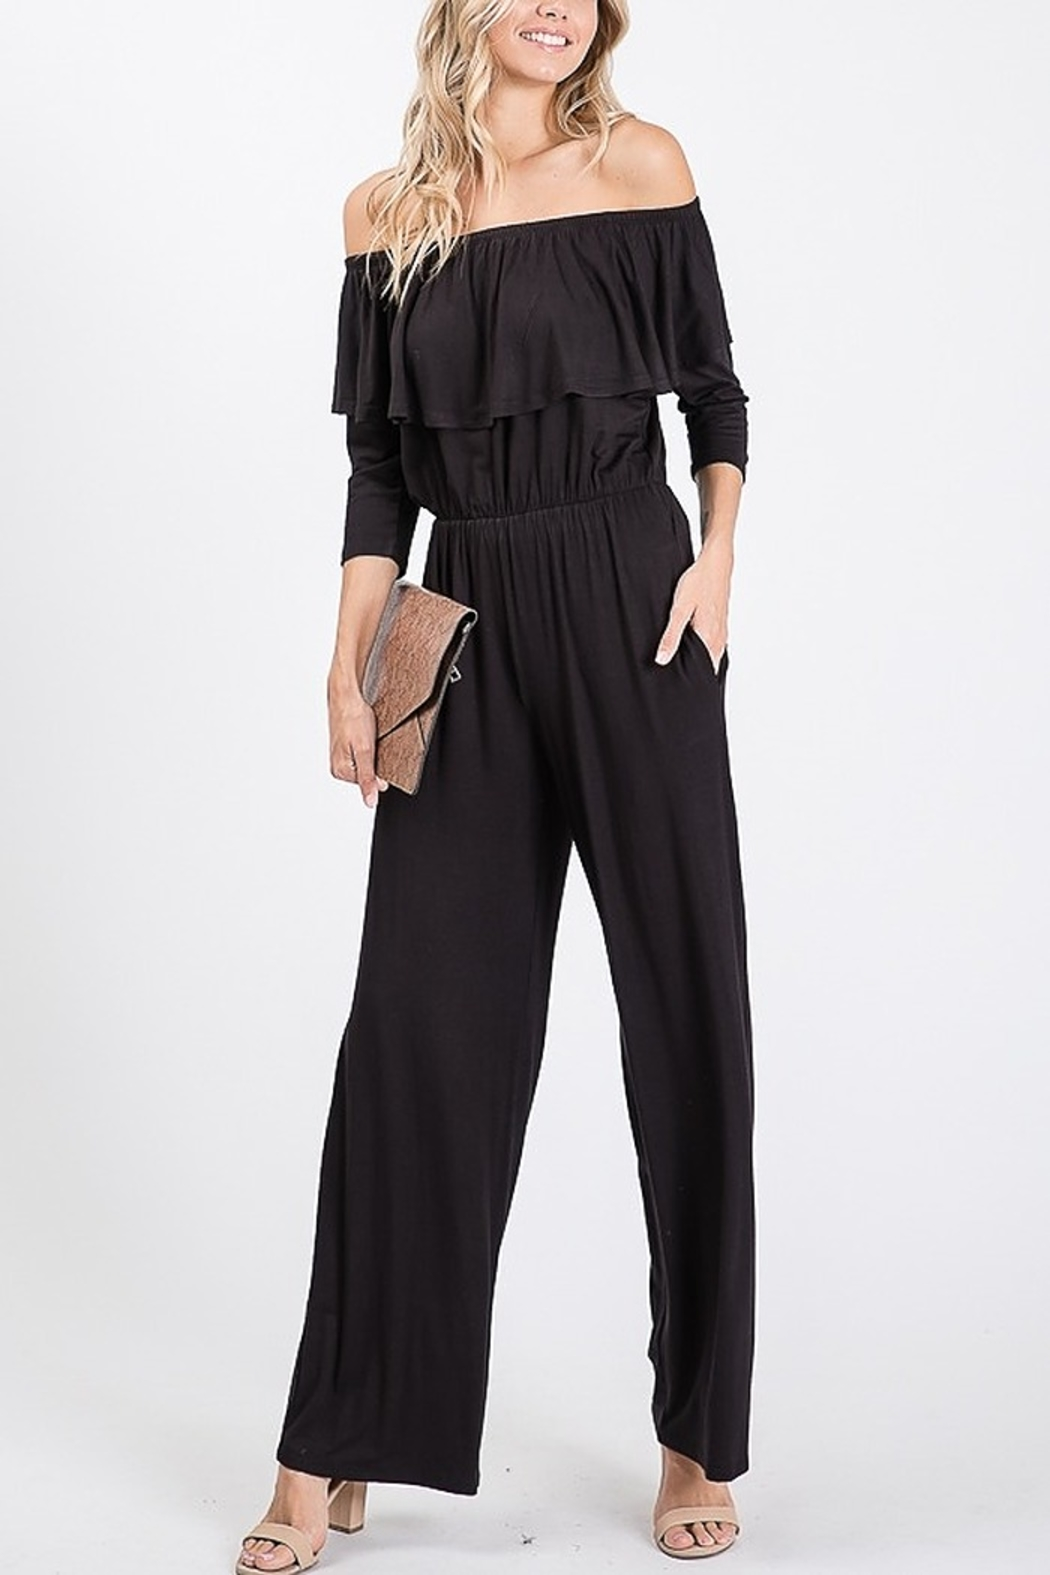 Lyn -Maree's Ruffled Off the Shoulder Jumpsuit - Main Image